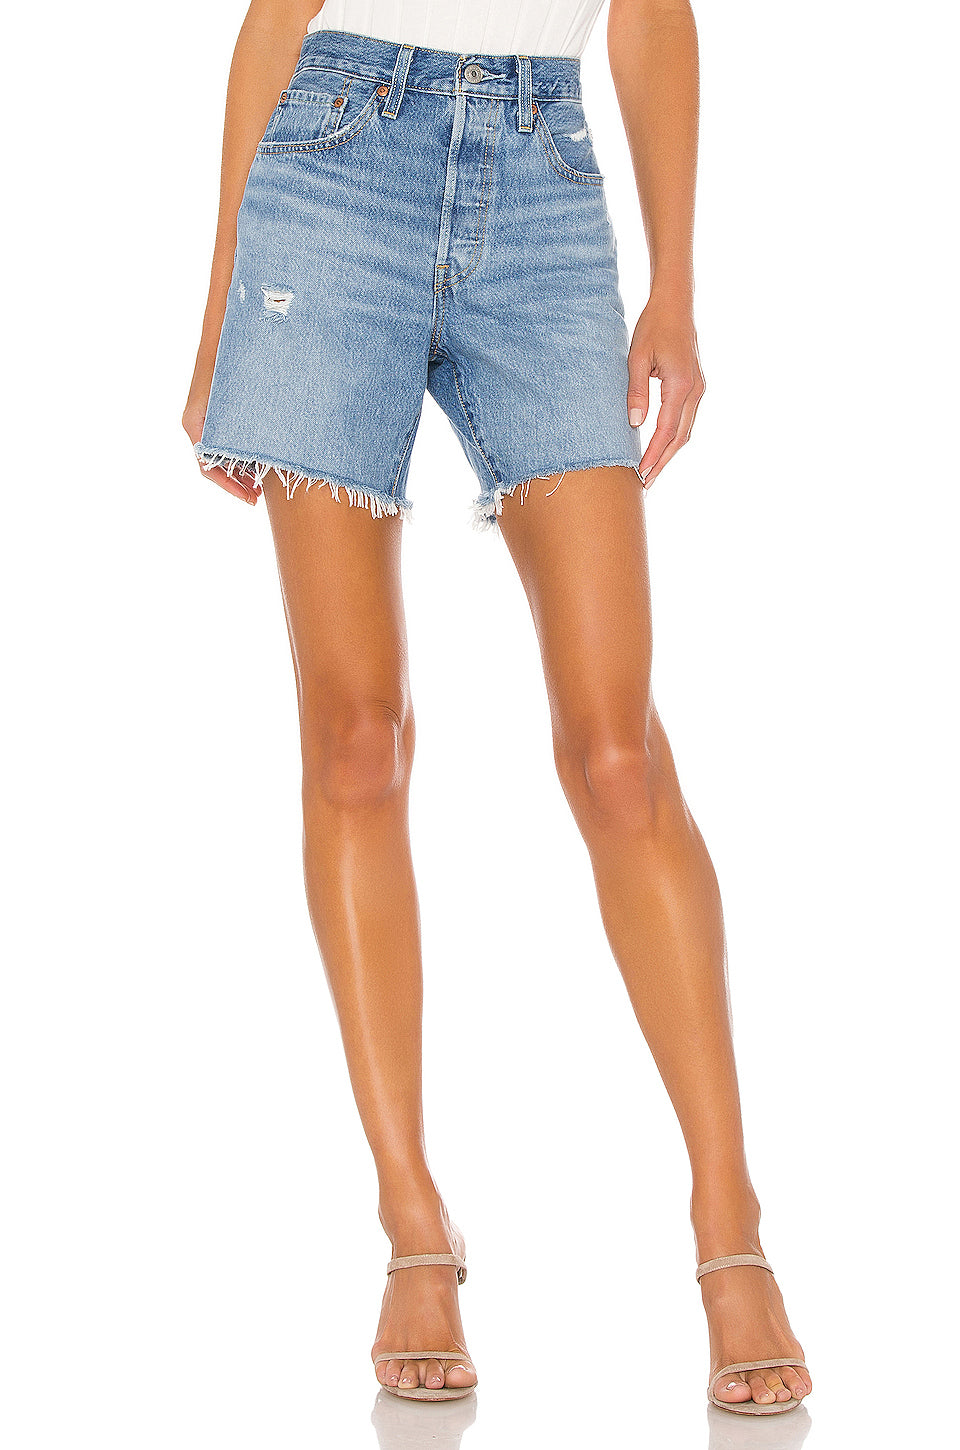 Levi's Mid Thigh Short in Luxor Street